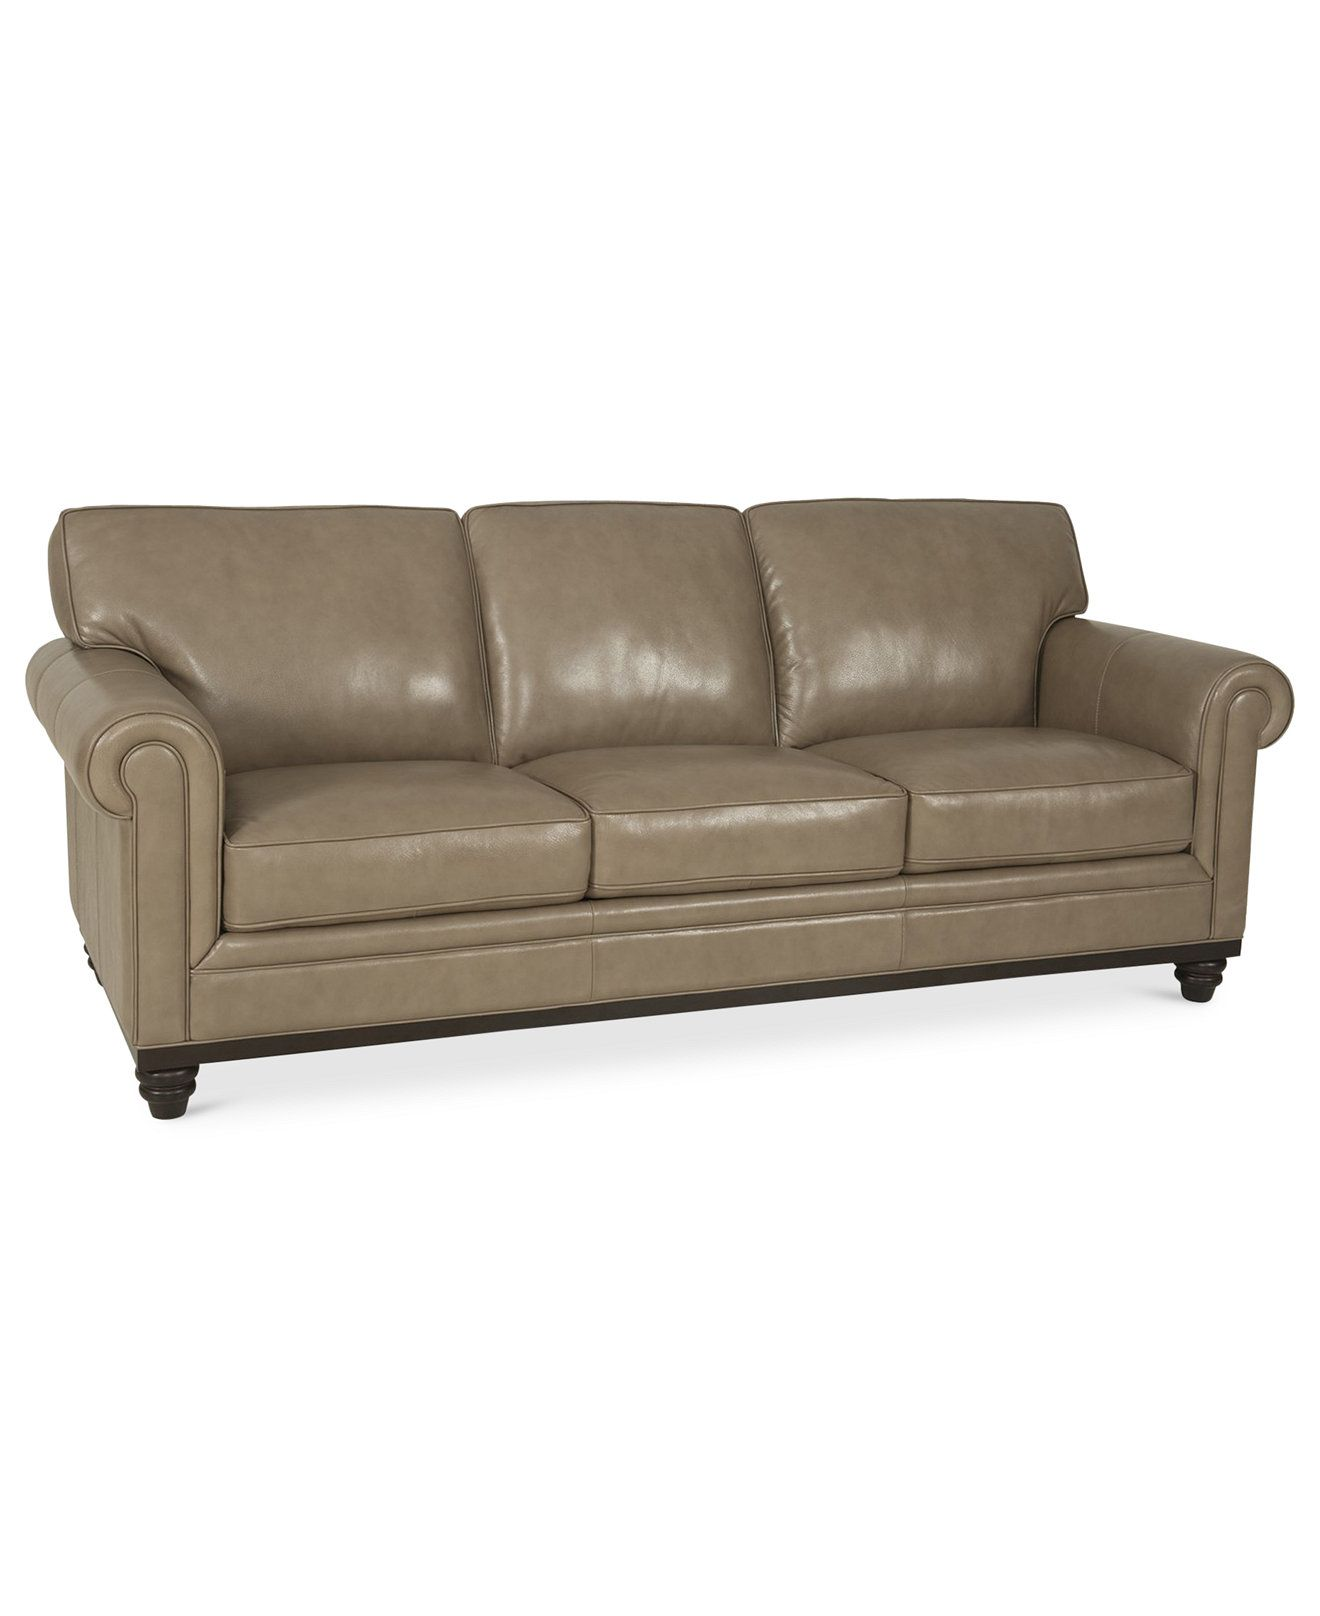 Martha stewart collection bradyn leather sofa created for for Macy s sectional sofa leather